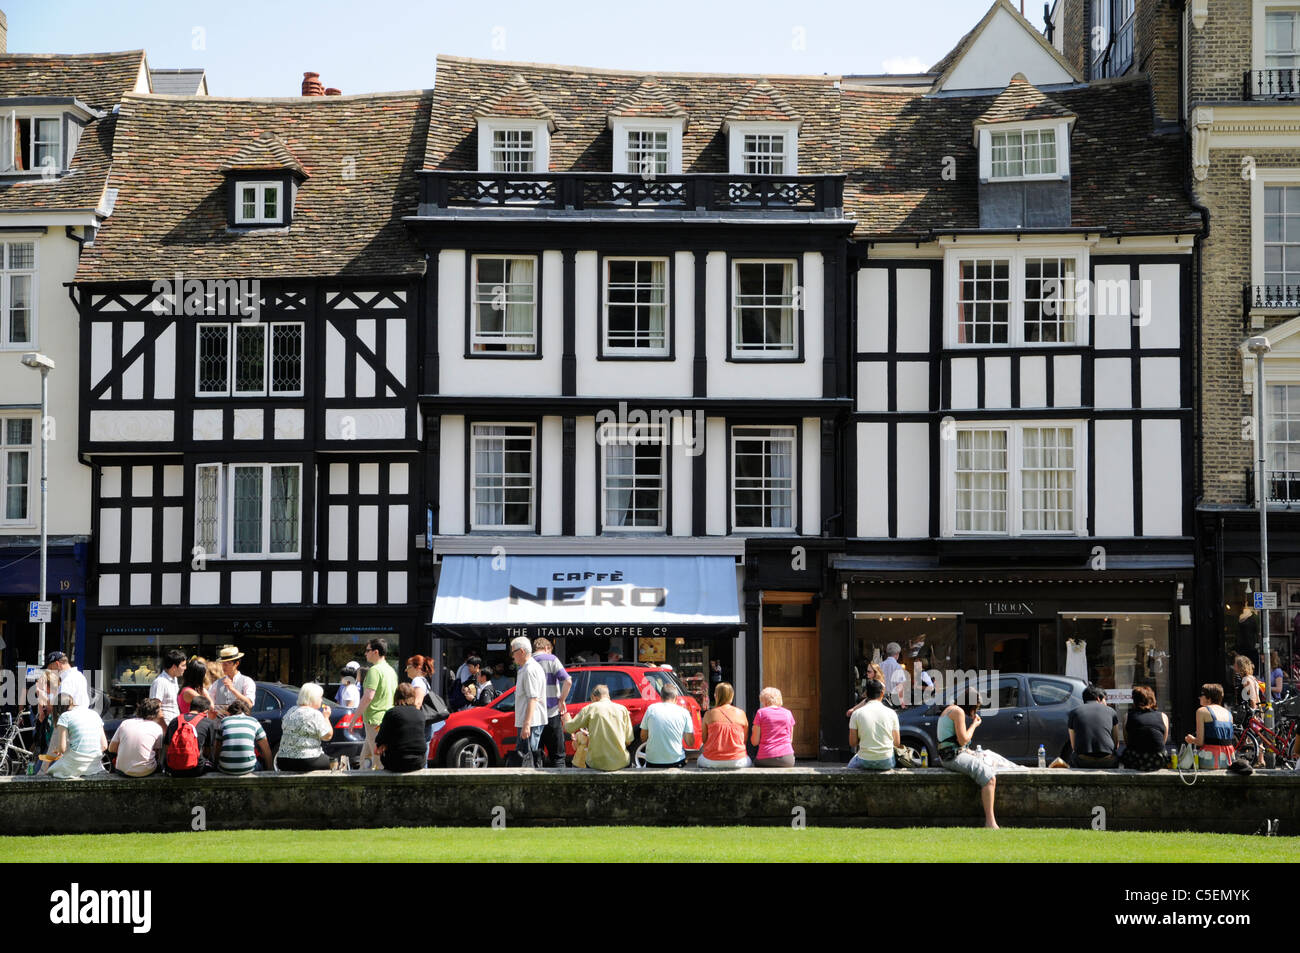 Street scene of tourists on Kings Parade Cambridge - Stock Image